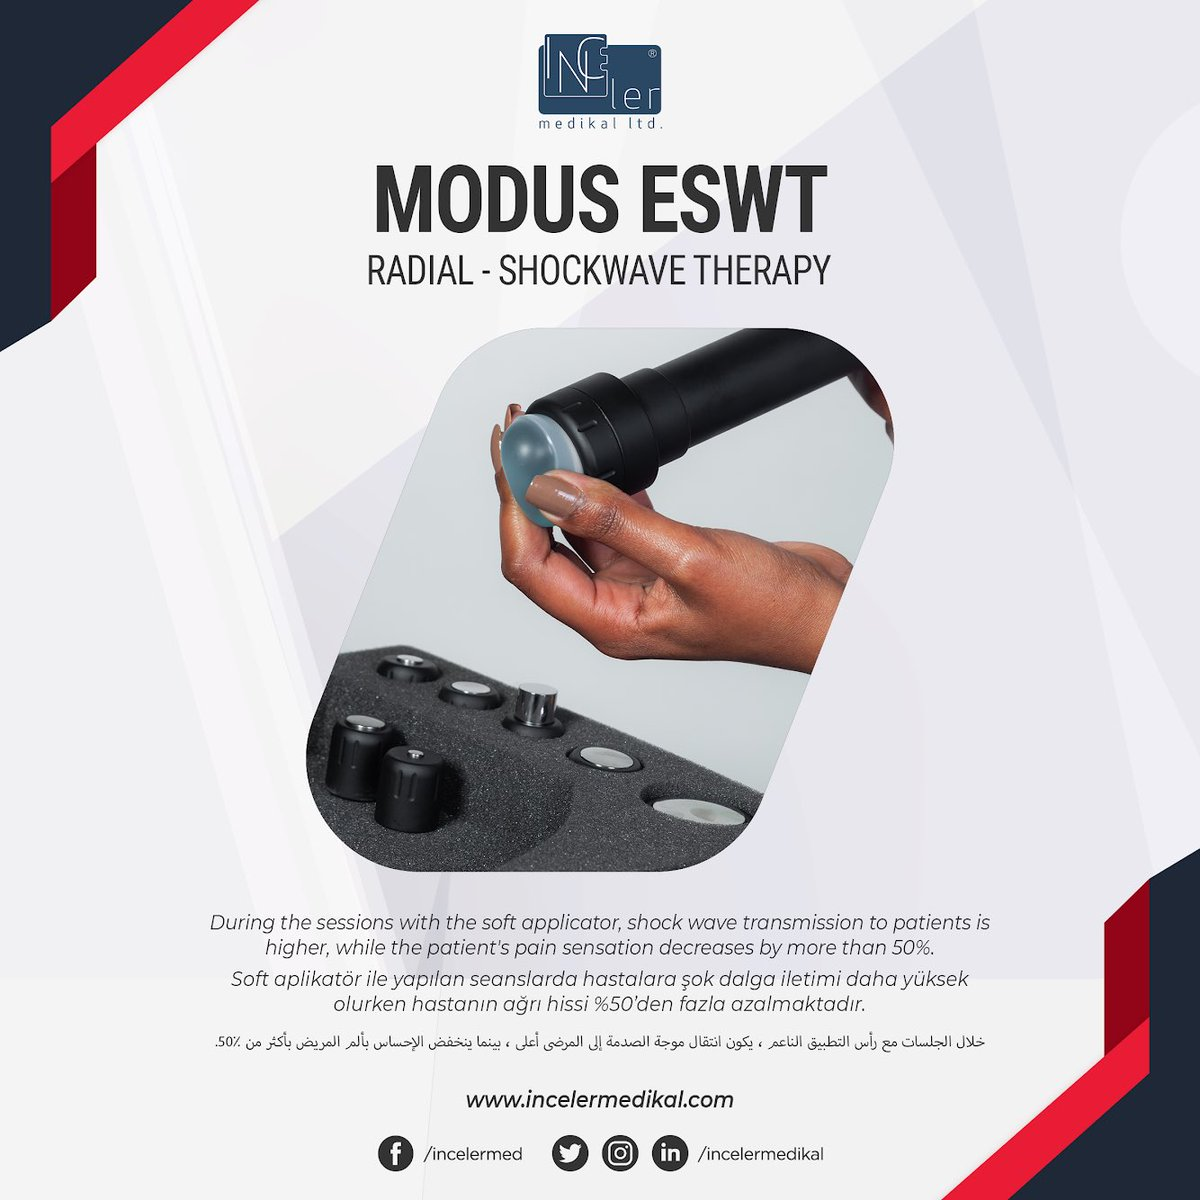 During the sessions with the soft applicator, shock wave transmission to patients is higher, while the patient's pain sensation decreases by more than 50%.  http://www.incelermedikal.com  #shockwavetherapy #shockwavedevice #eswt #shockwave #therapy #shockwavemachine #eswtmachine #Ftrpic.twitter.com/opzsjm4zDz